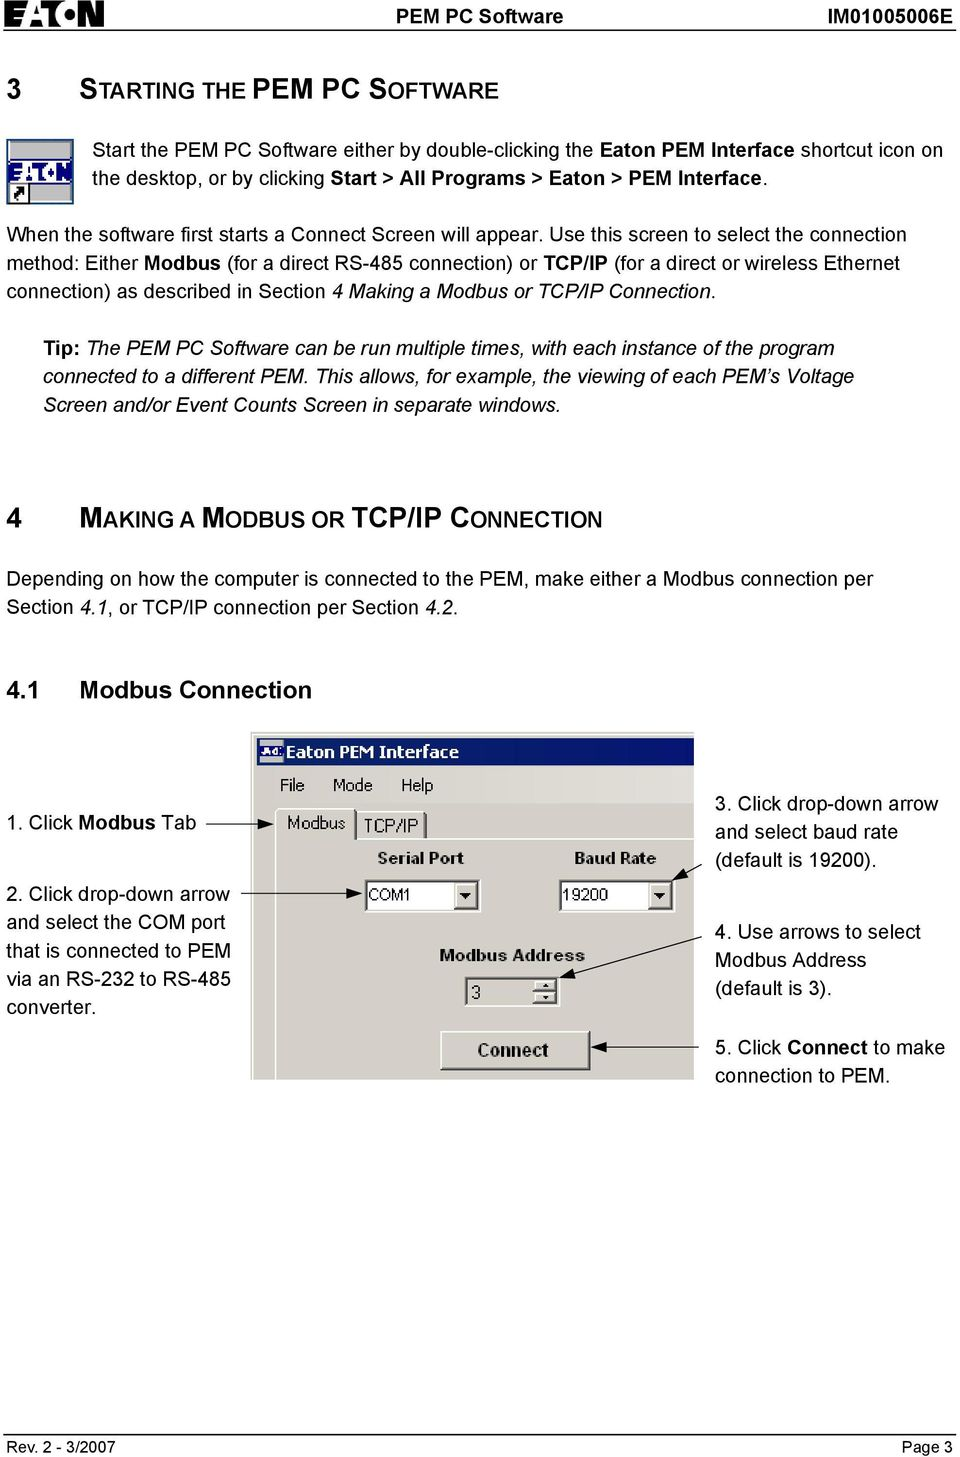 Use this screen to select the connection method: Either Modbus (for a direct RS-485 connection) or TCP/IP (for a direct or wireless Ethernet connection) as described in Section 4 Making a Modbus or